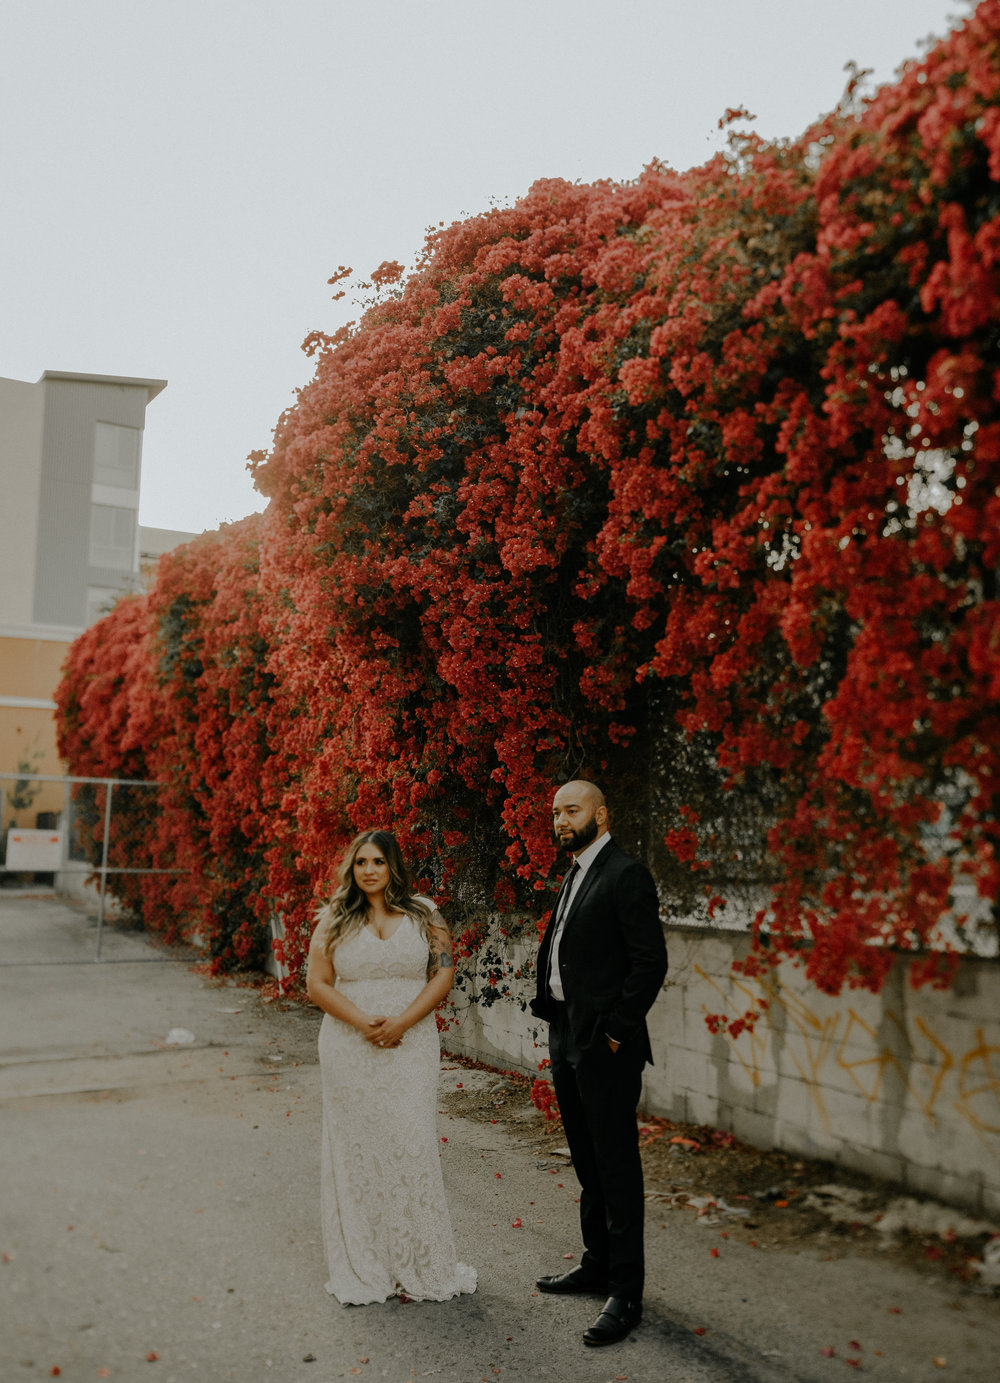 Isaiah + Taylor Photography - Los Angeles Wedding Photographer - DTLA Arts District  Engagement Session  022.jpg